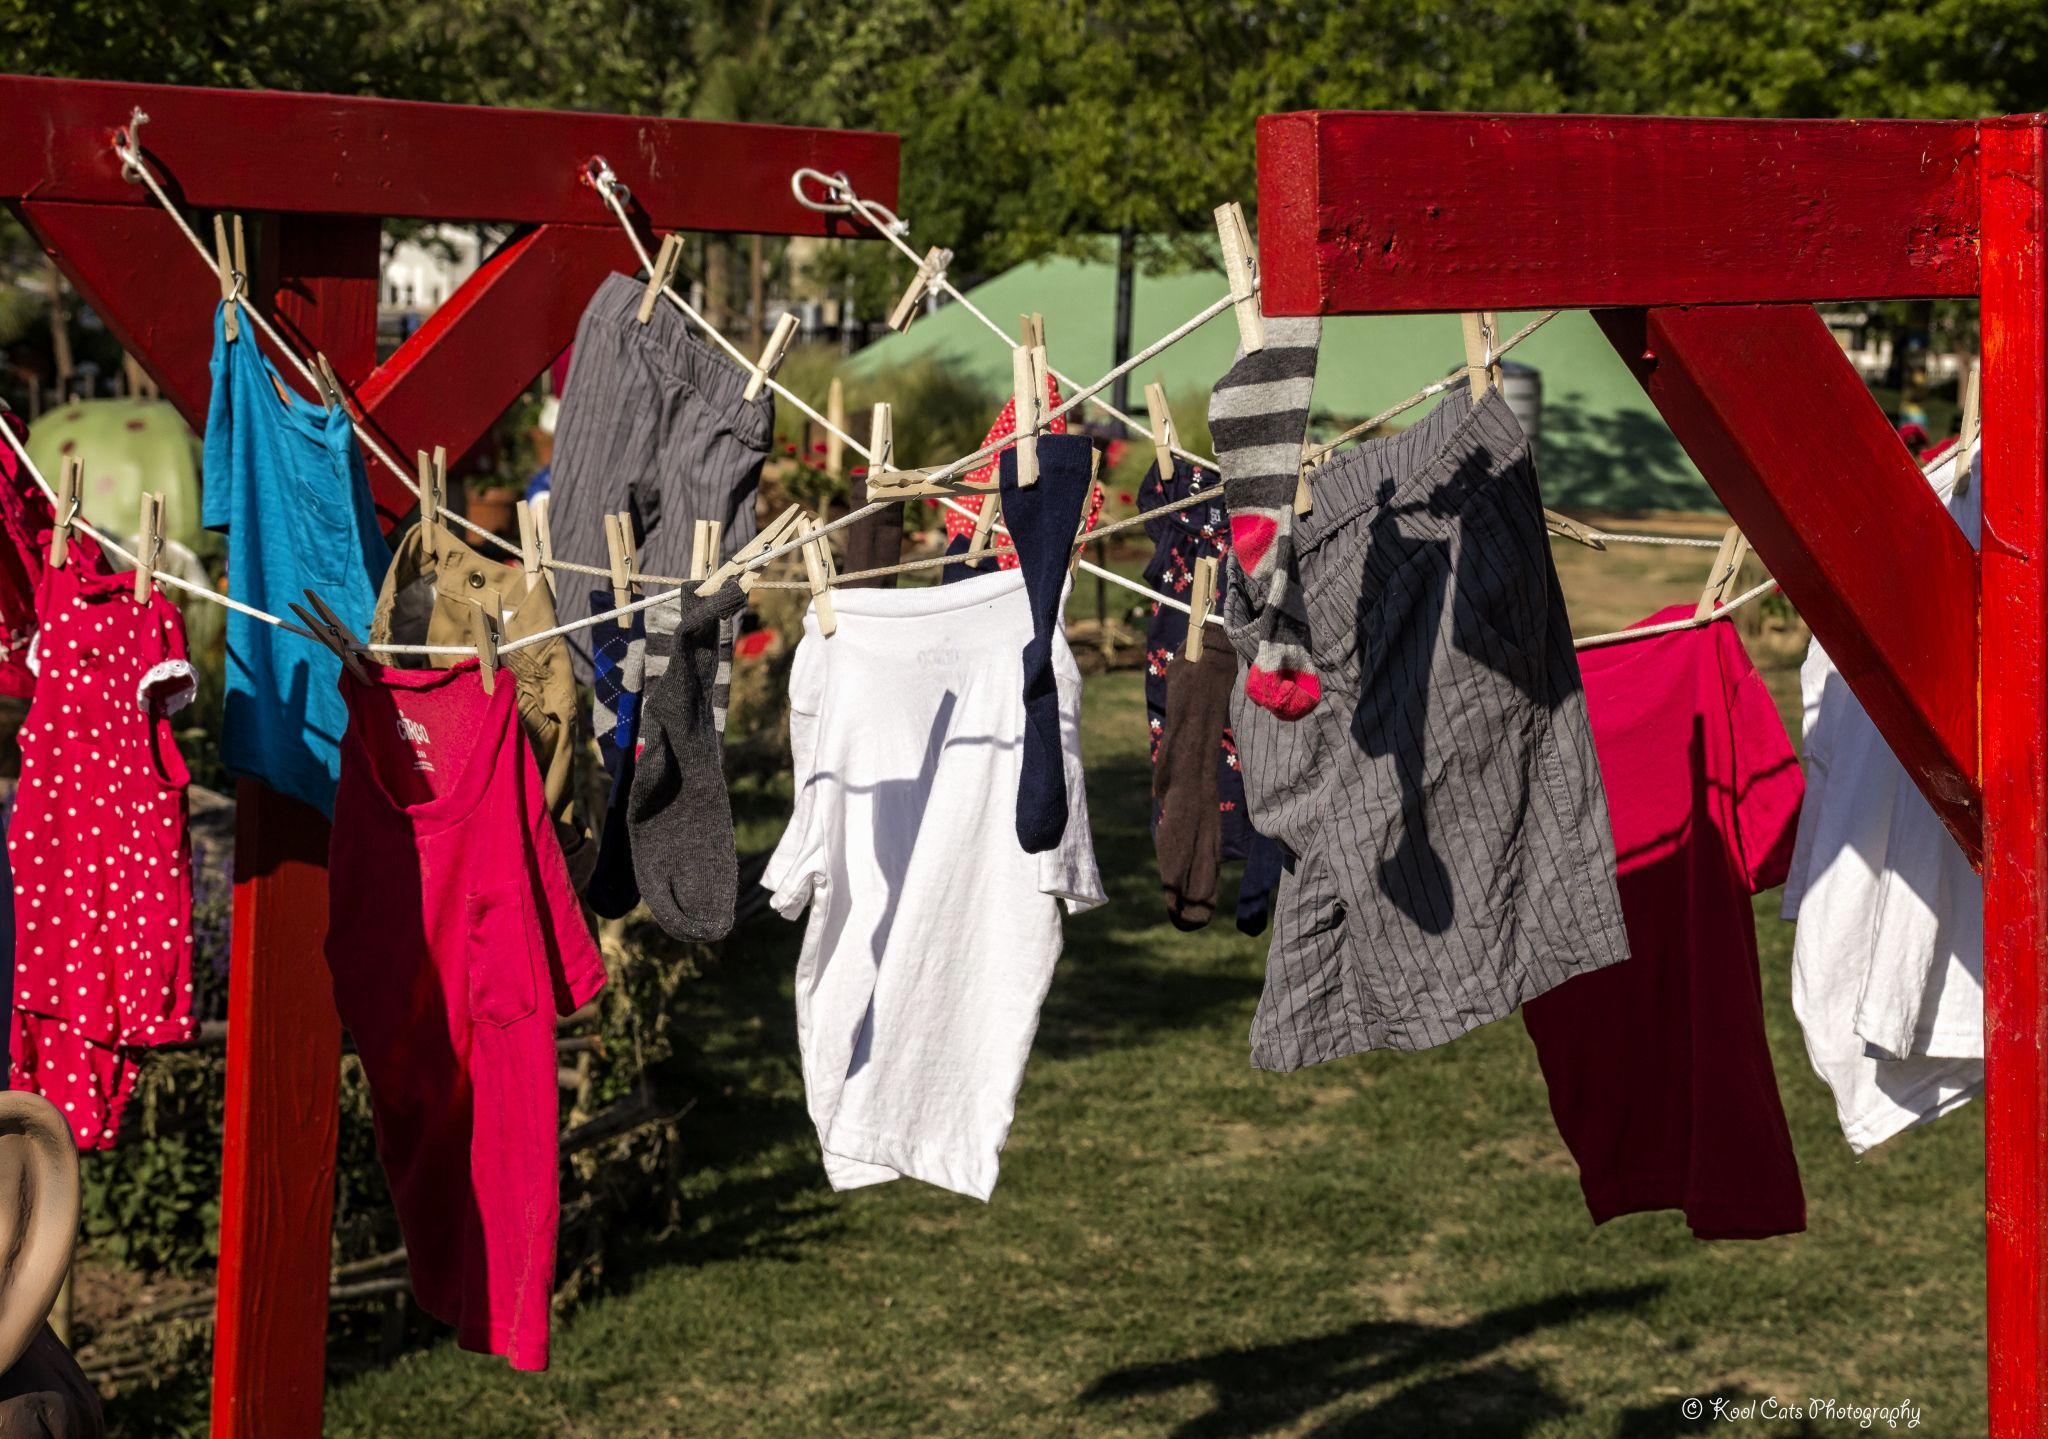 All sizes | Hang to Dry | Flickr - Photo Sharing!